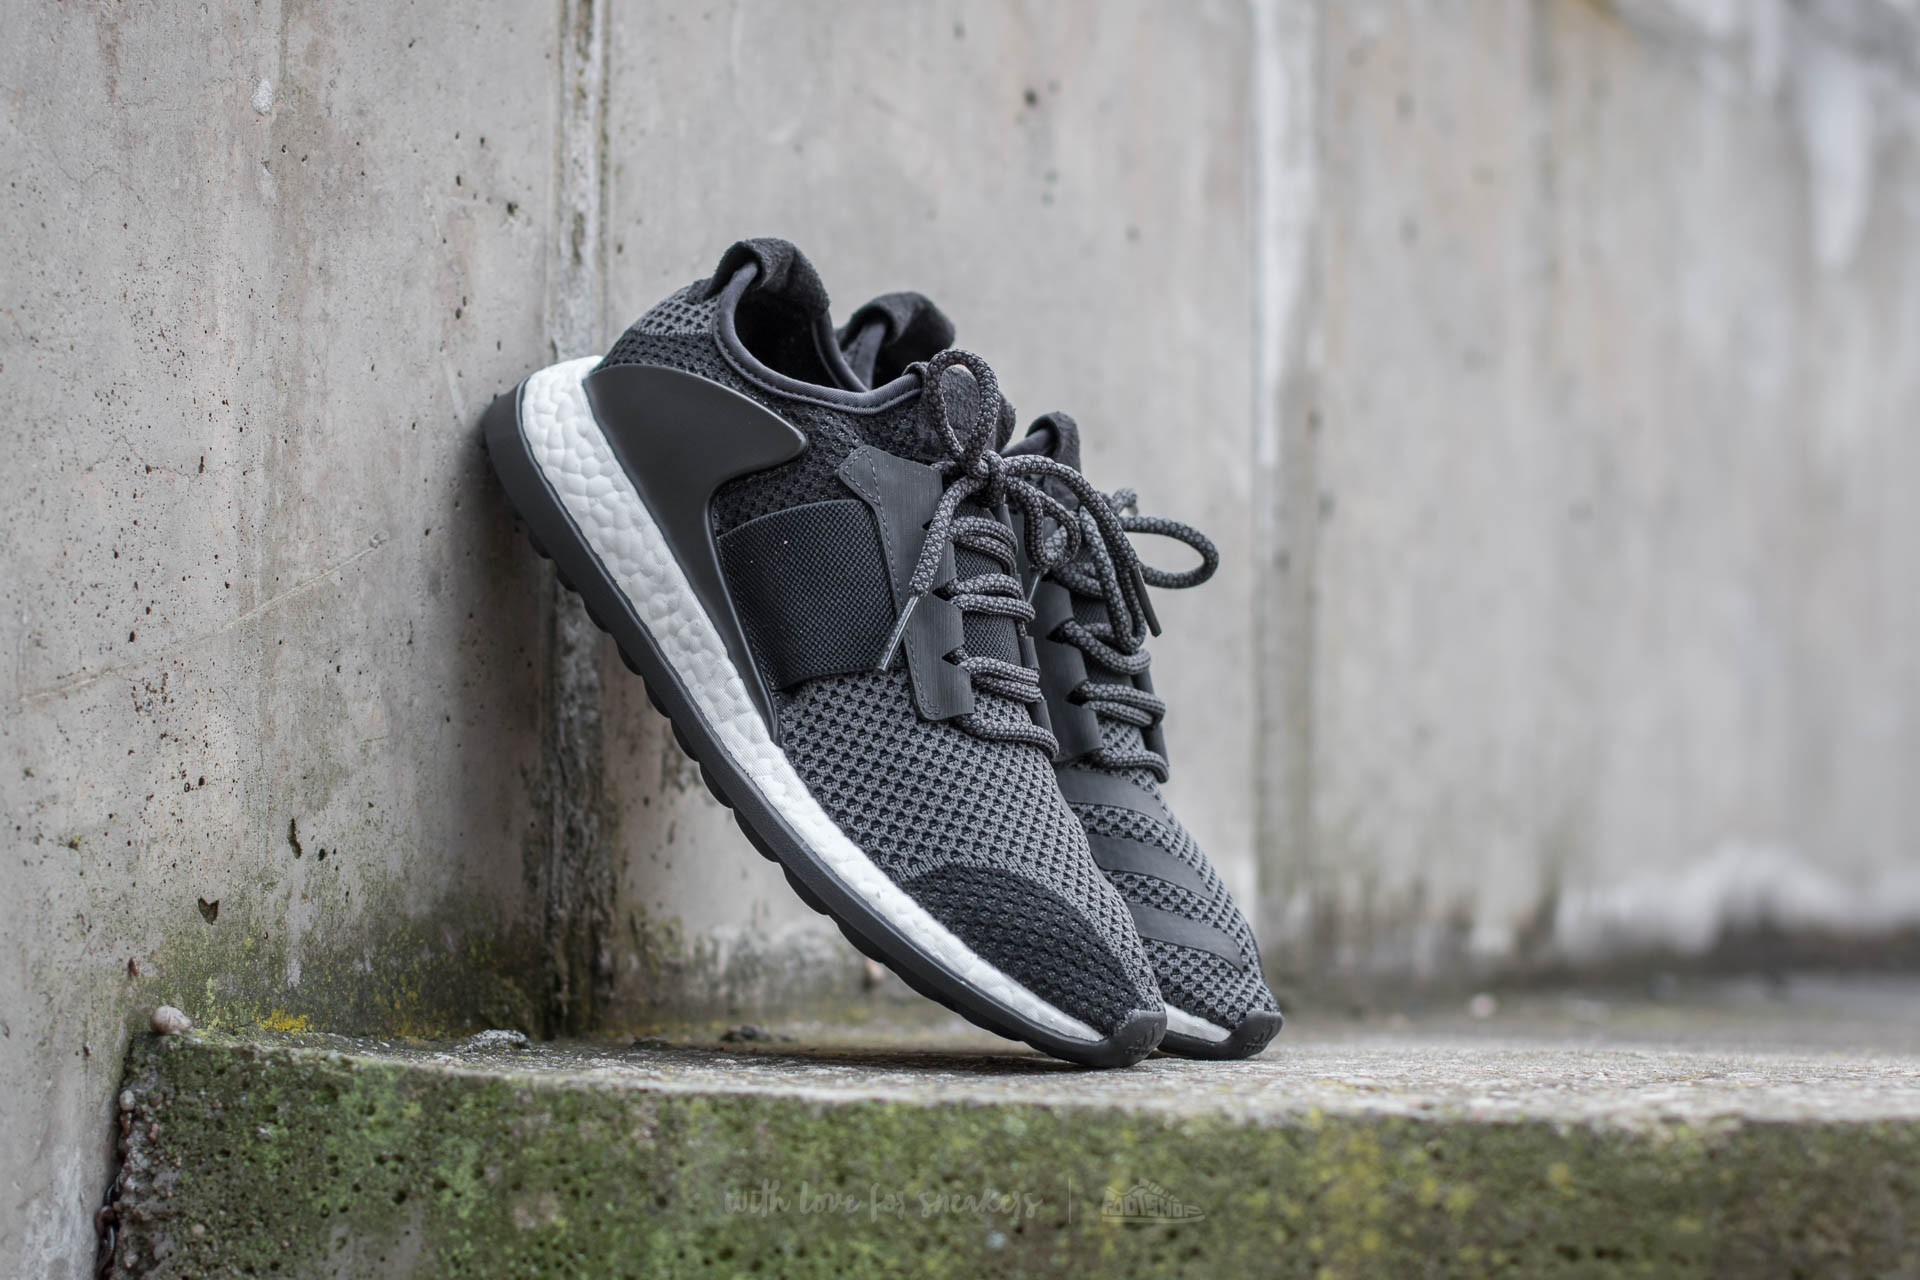 adidas Pure Boost ZG Core Black/ Charcoal/ FTW White - 11154